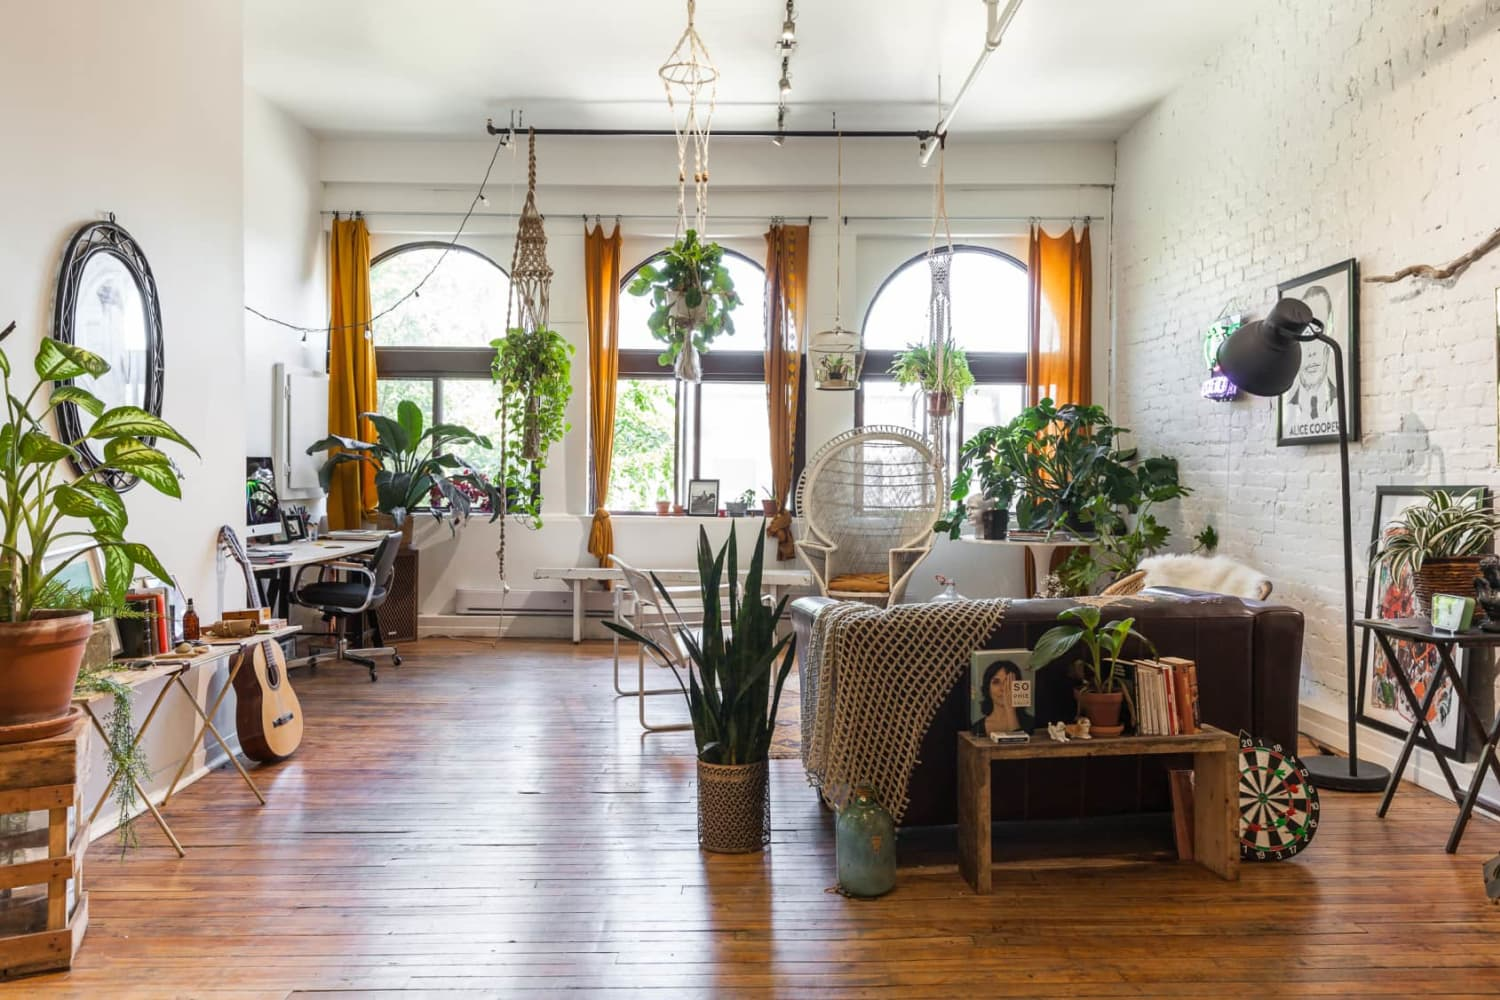 25 Design Tips to Help Embrace Your Inner Boho | Apartment ...